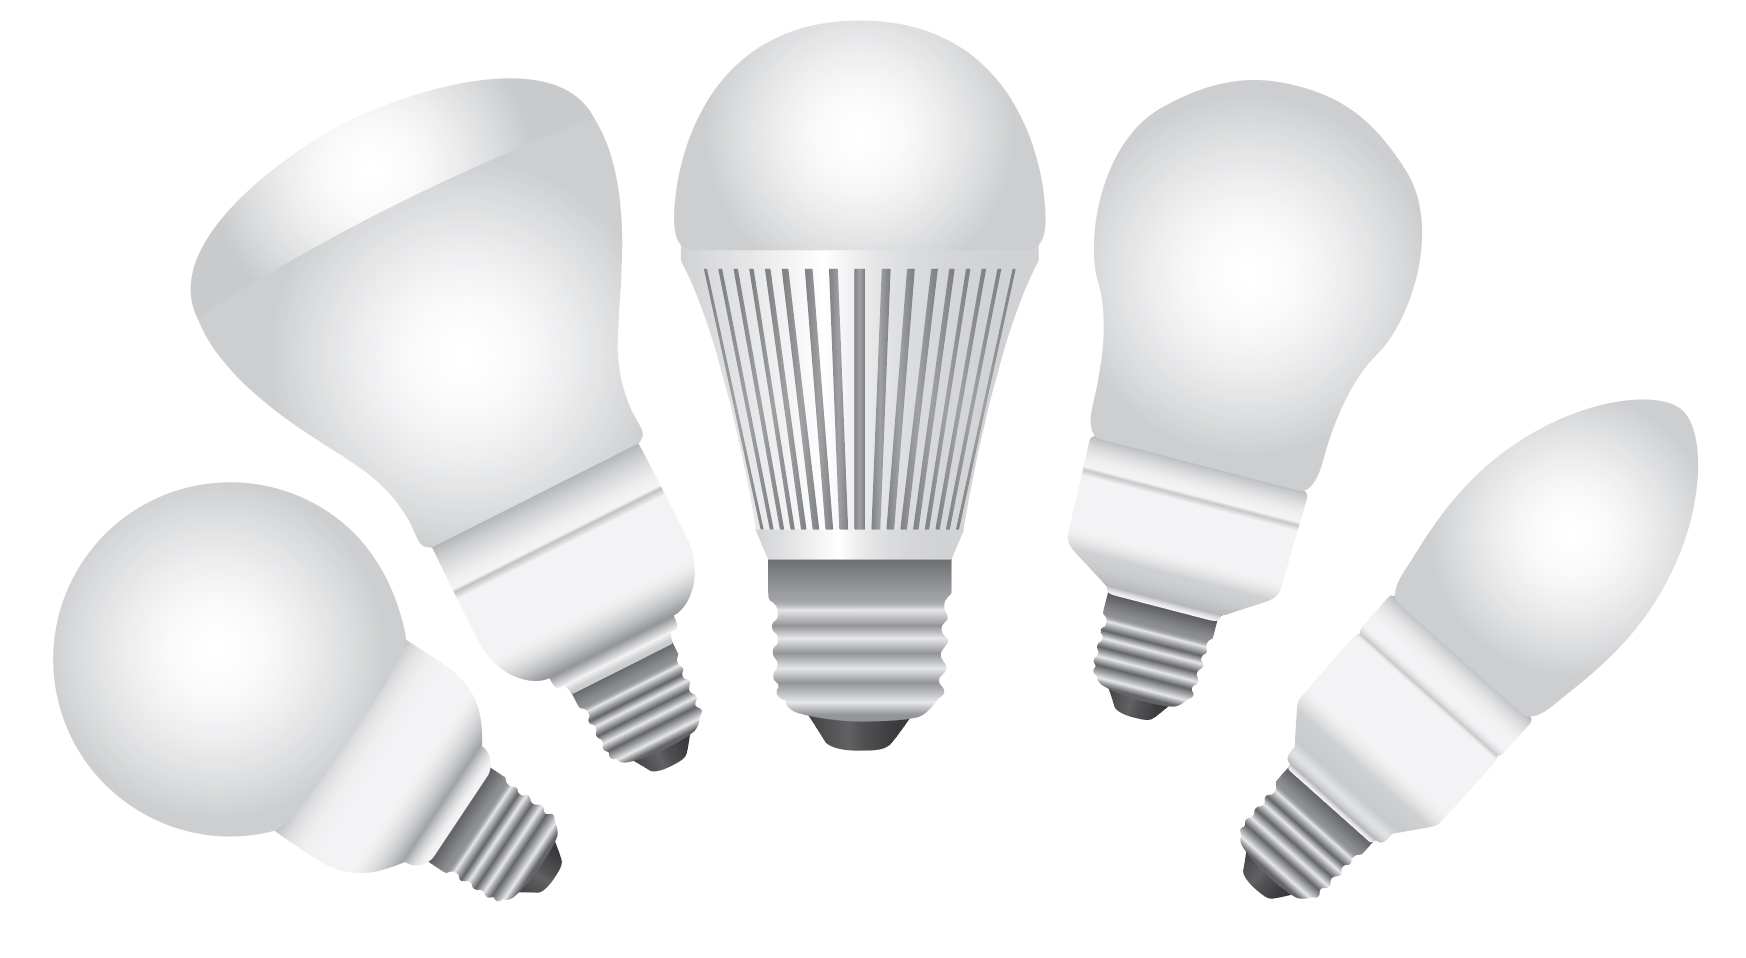 Group of light bulb shapes